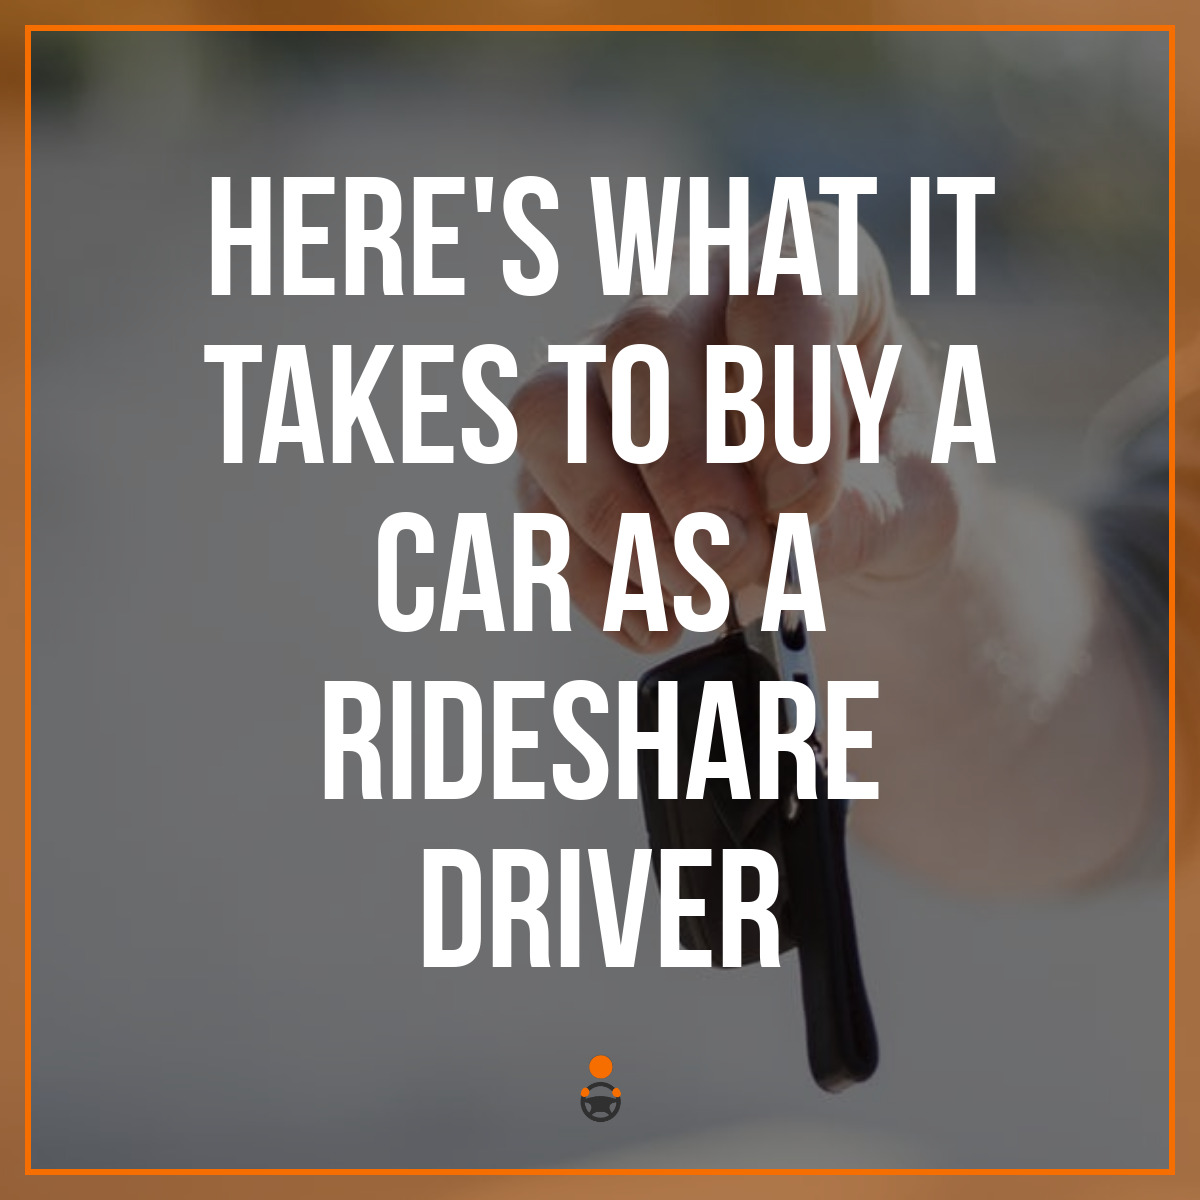 Here's What it Takes to Buy a Car as a Rideshare Driver